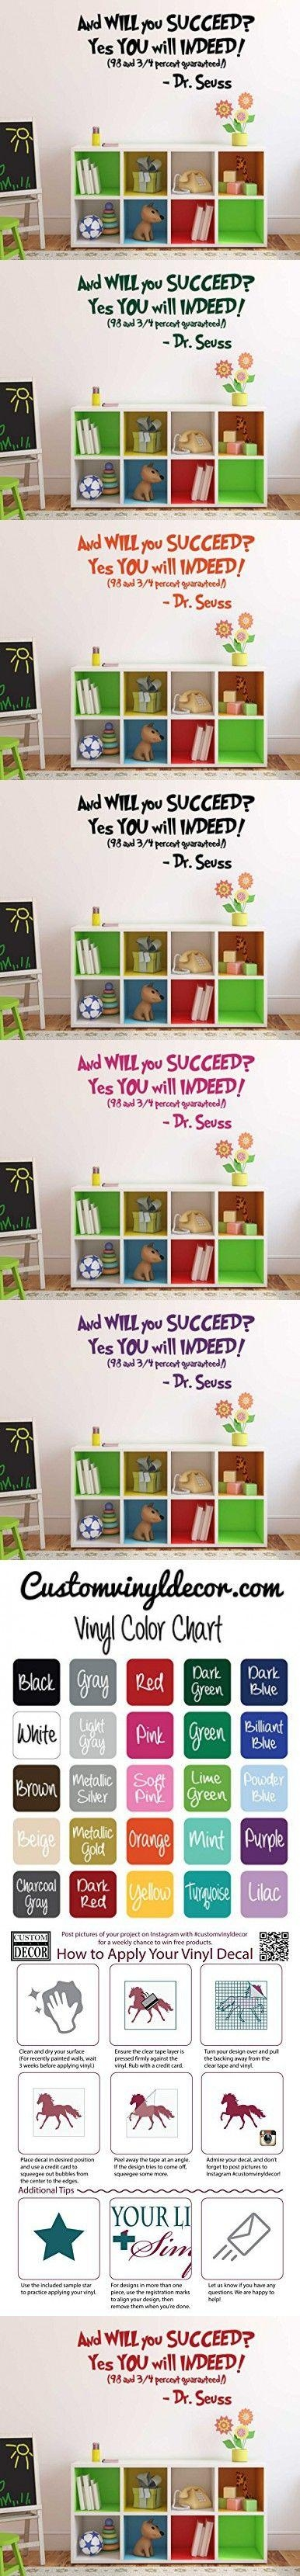 113 Best {Library} Shelves & Signage Images On Pinterest | Library regarding Preschool Classroom Wall Decals